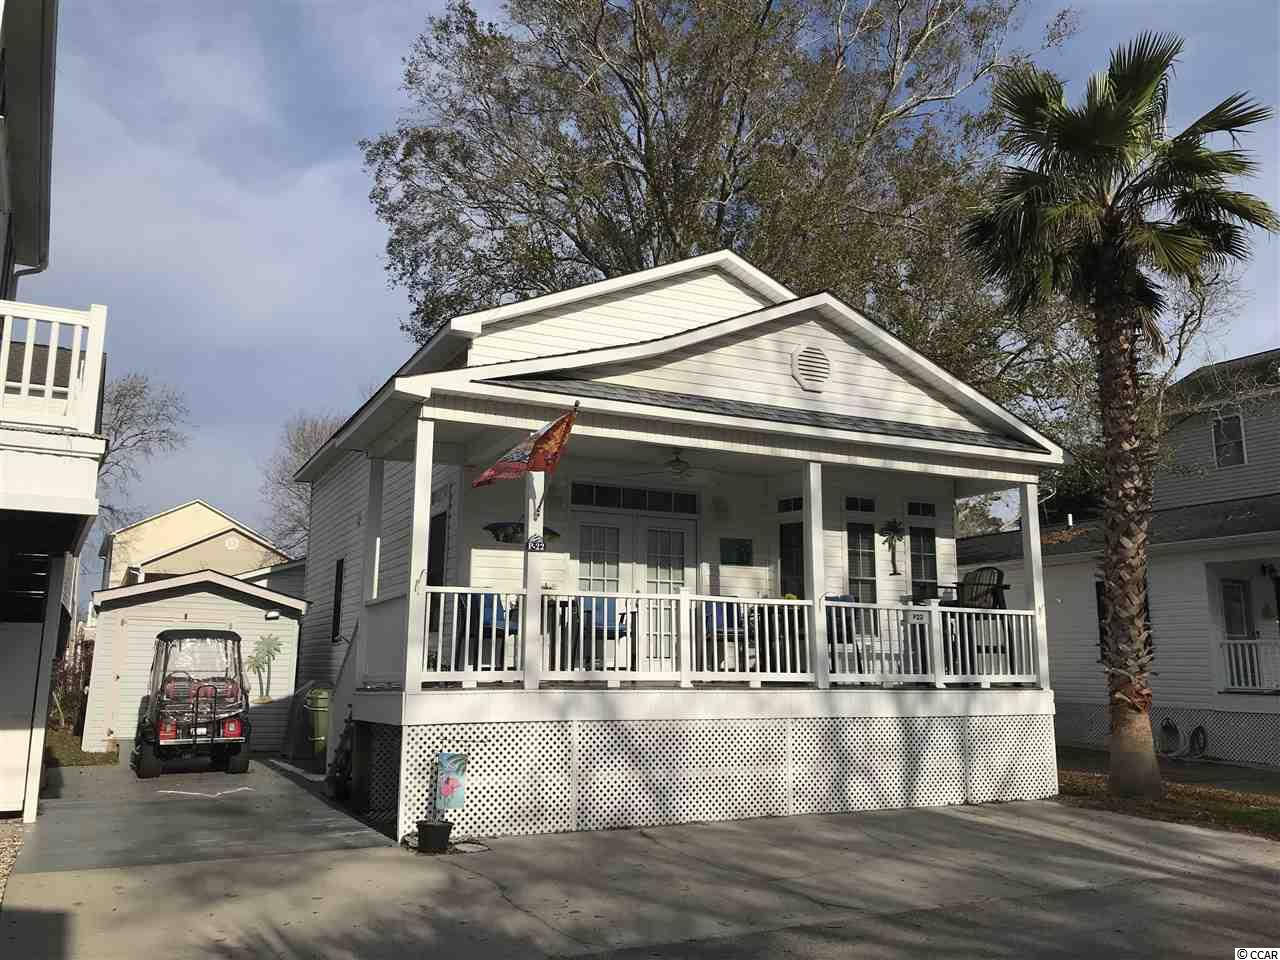 6001 - P22 S Kings Hwy., Myrtle Beach, South Carolina